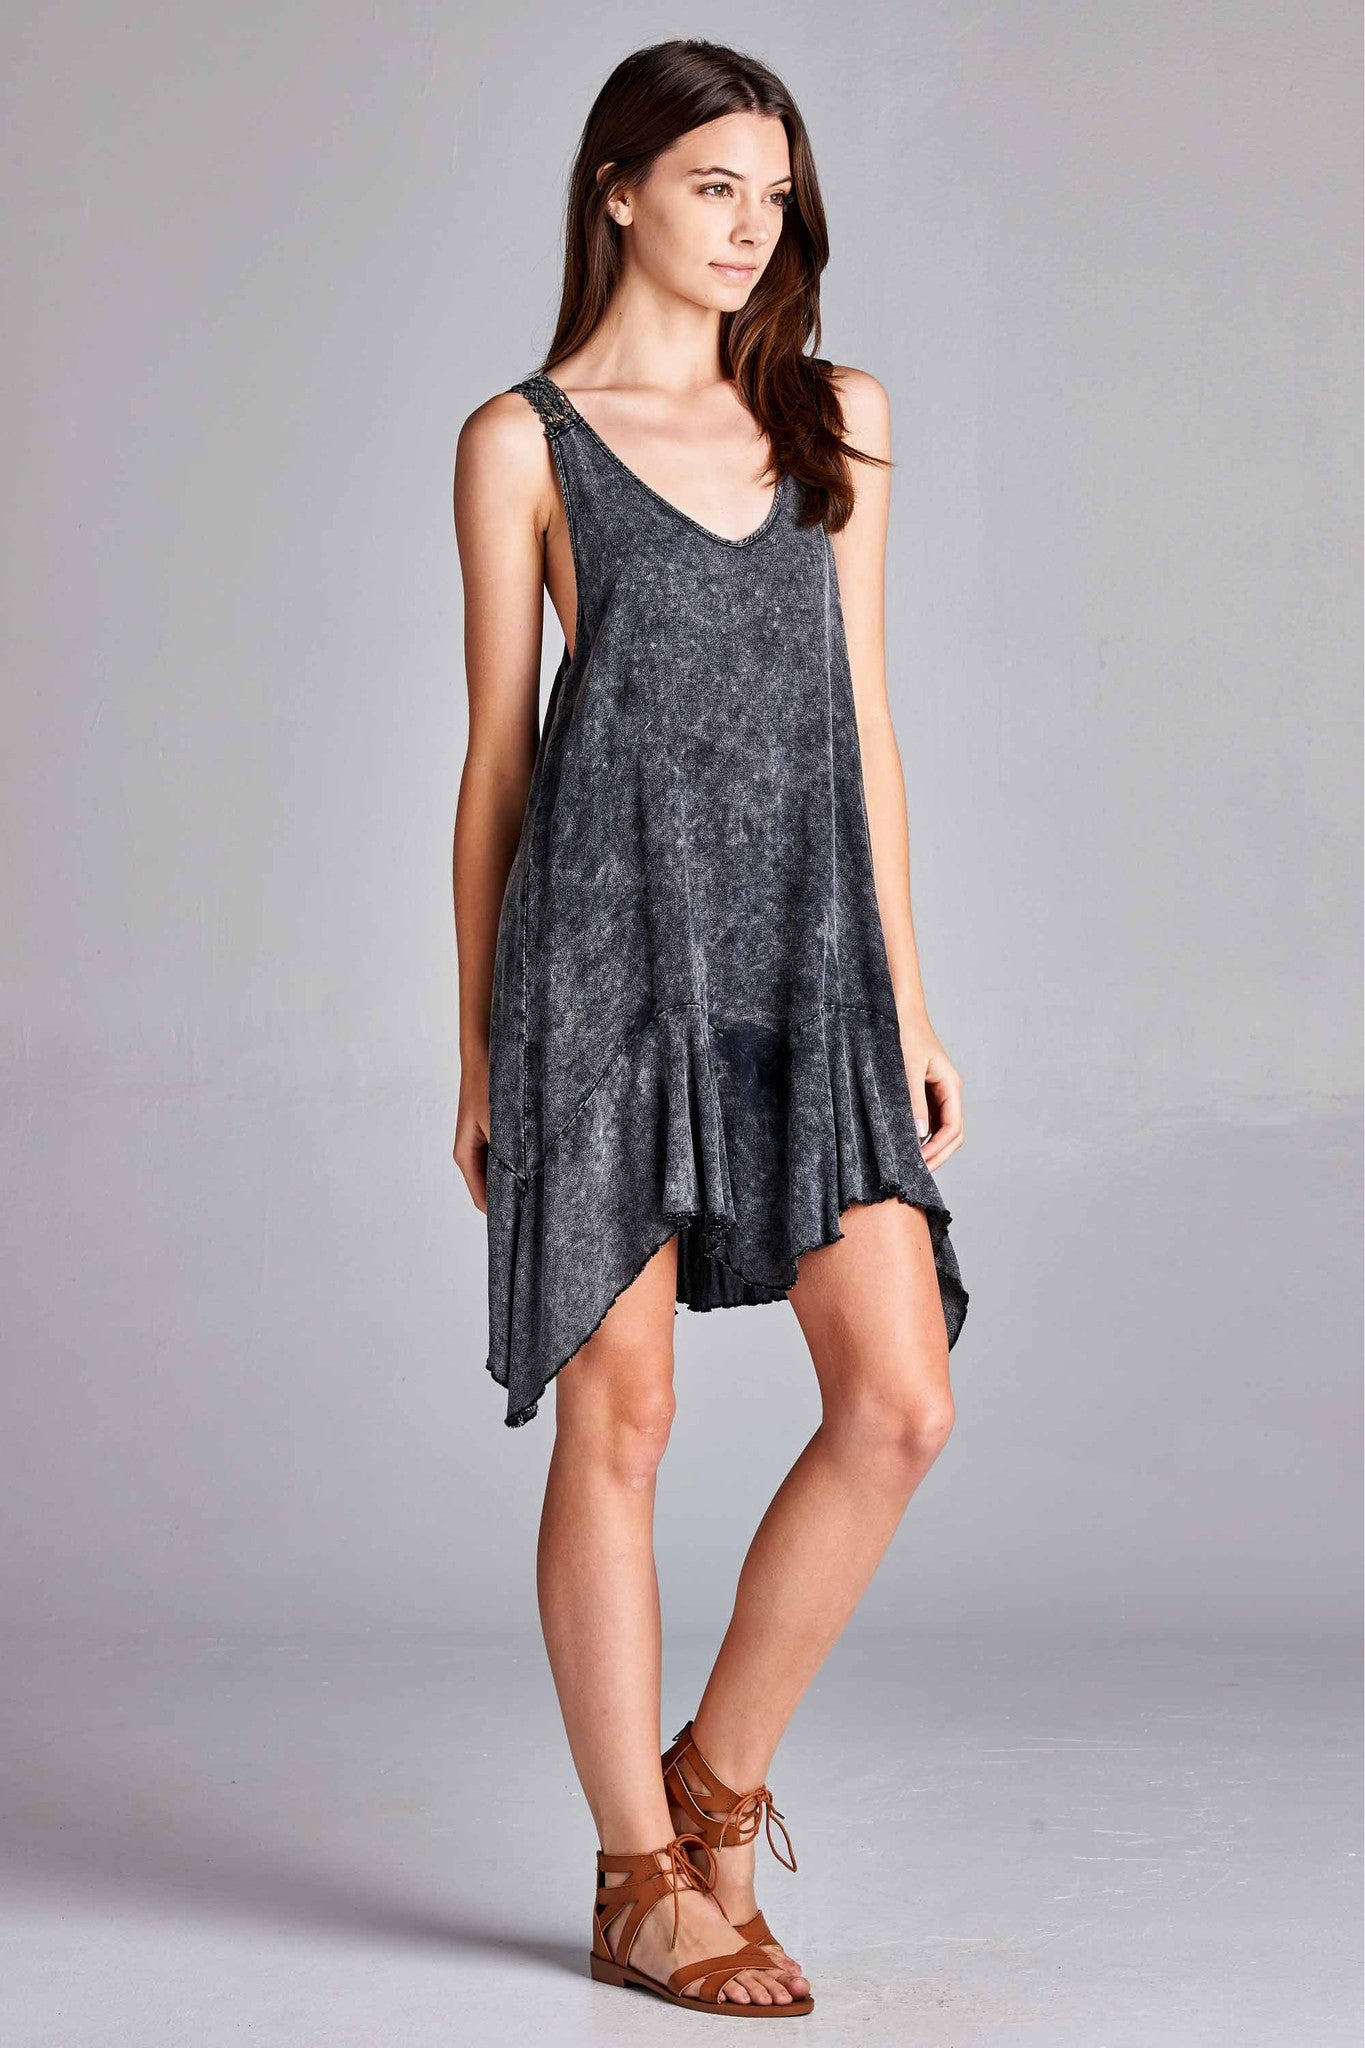 Mineral Wash Lace Panel Dress - Graphite